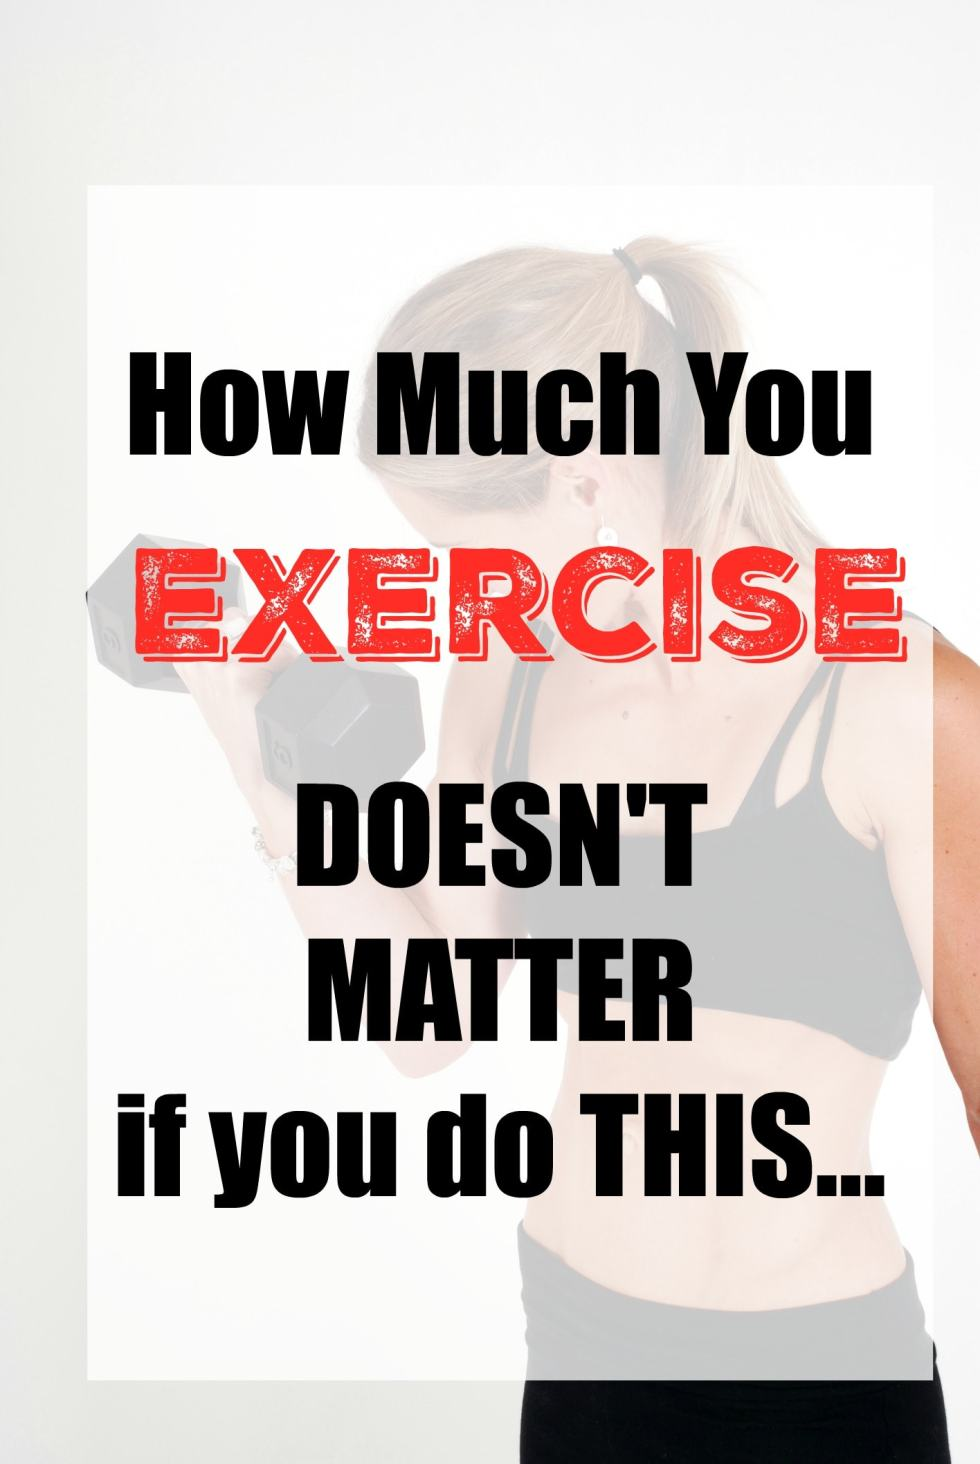 How much you exercise really doesn't matter if you are doing this one thing, your efforts won't matter.